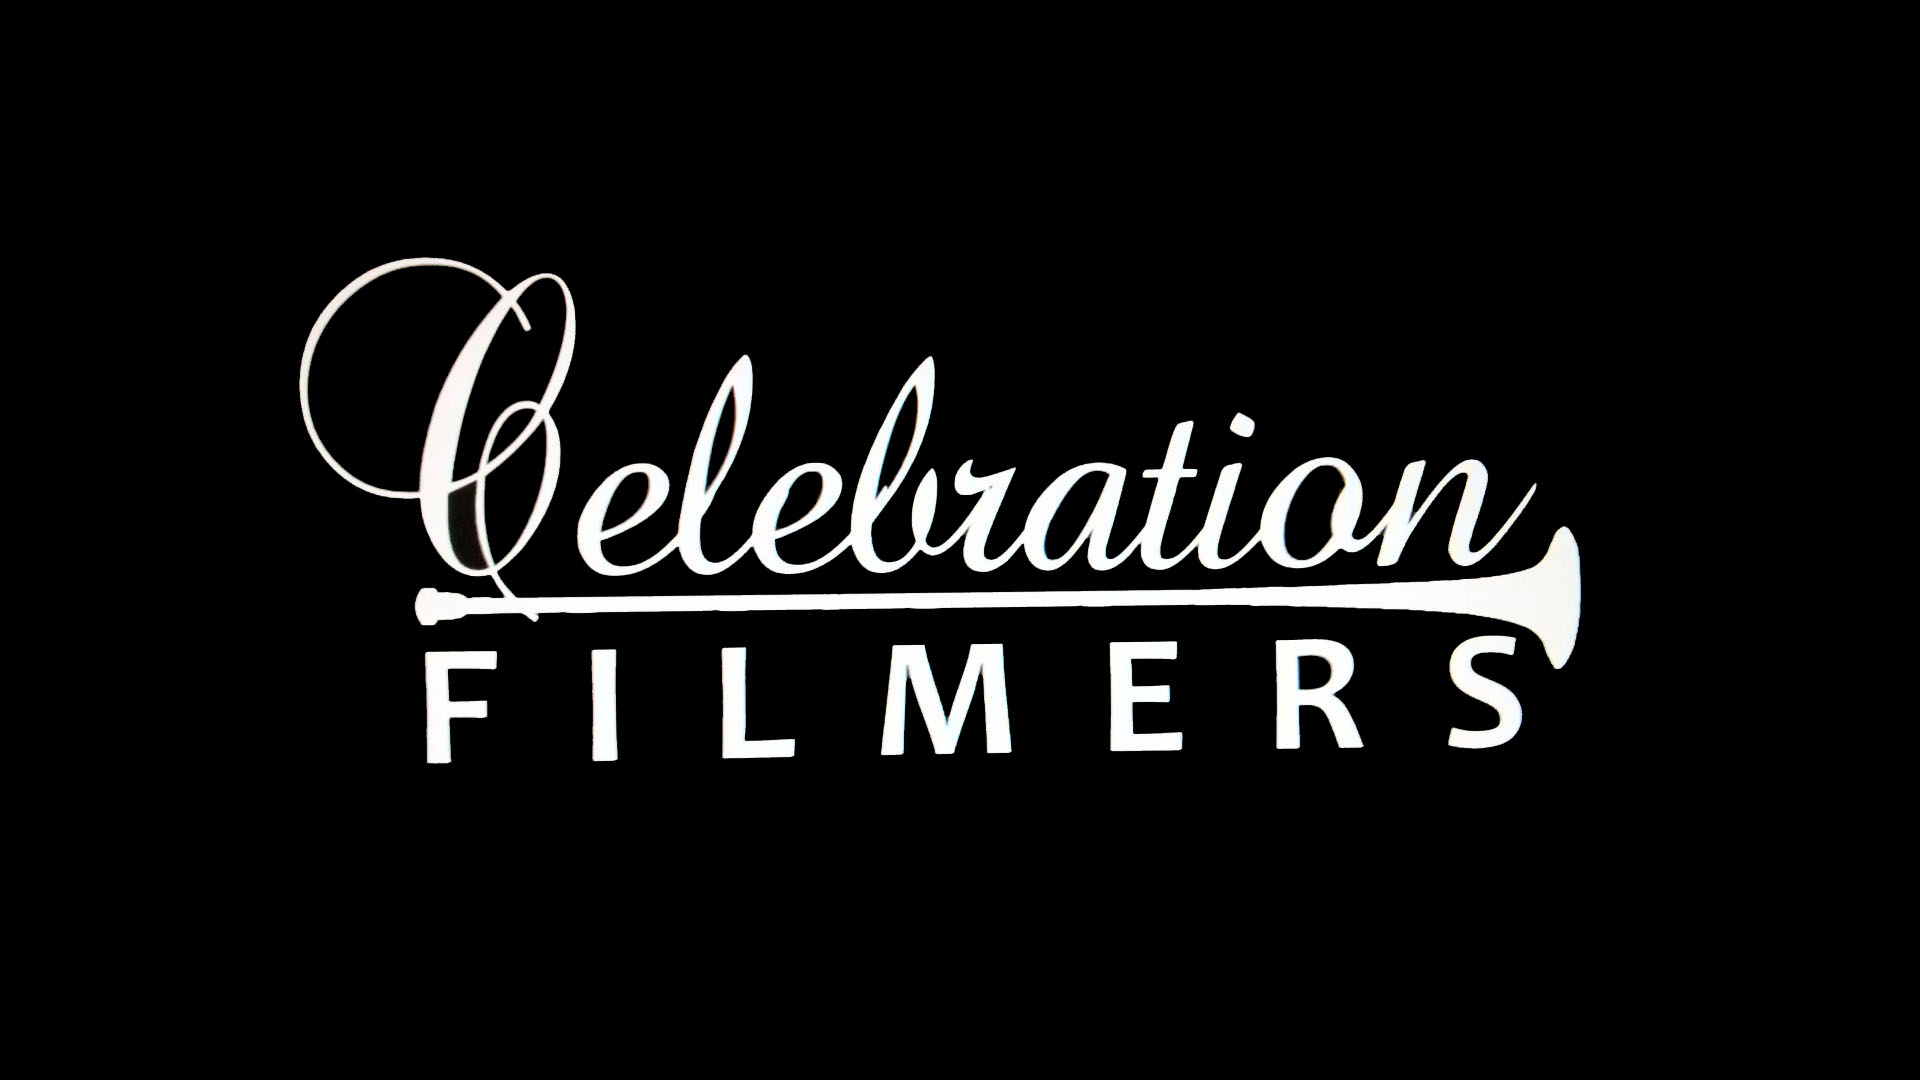 Celebration Filmers